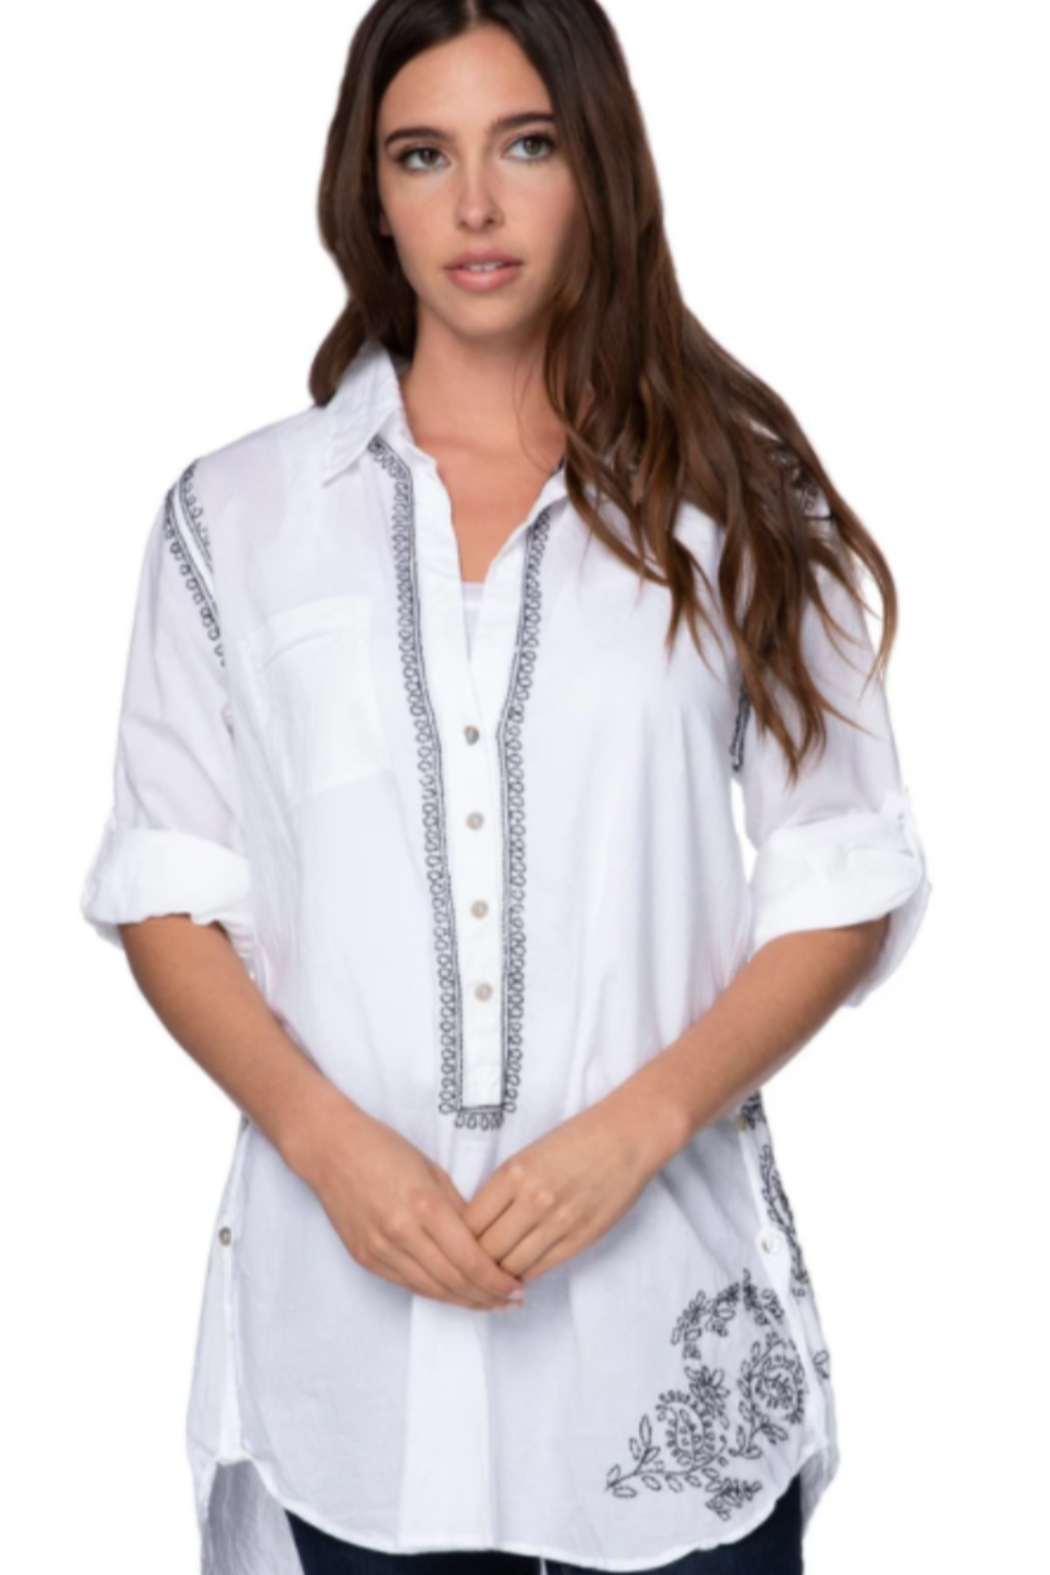 subtle luxury Boyfriend Shirt in White/Noir OR White/Pink - Front Cropped Image